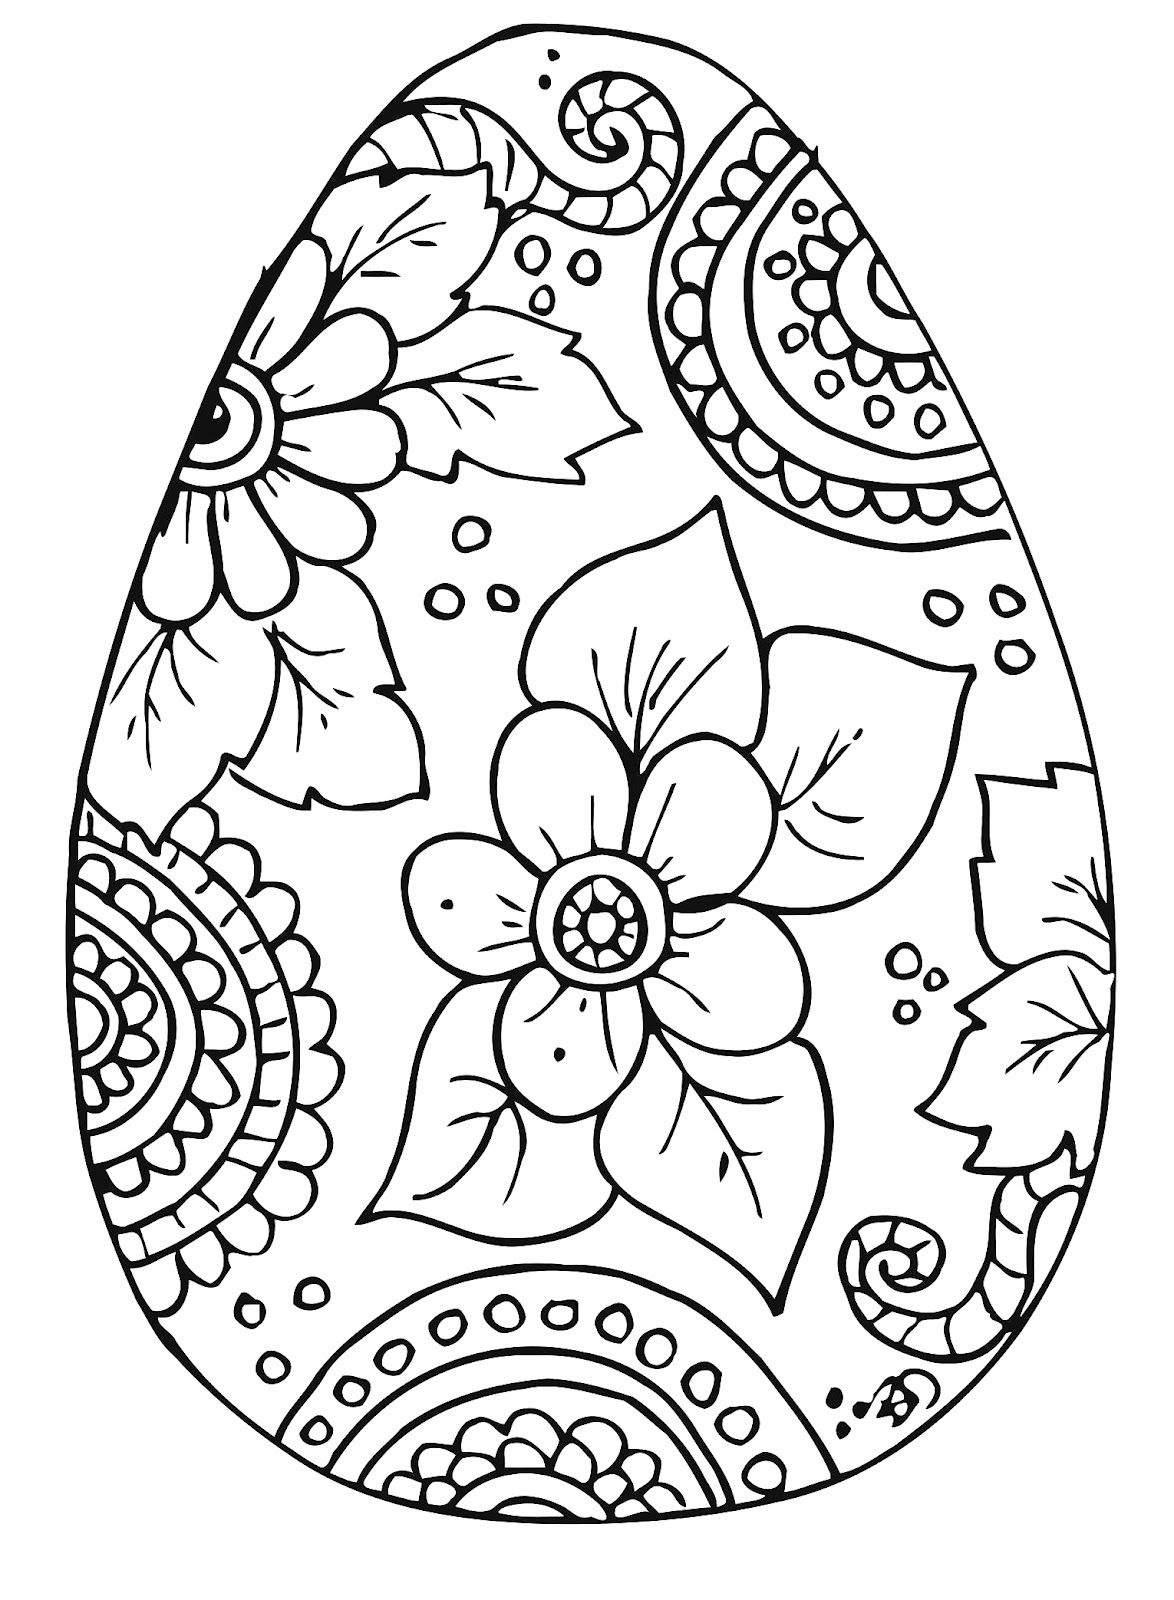 10 Cool Free Printable Easter Coloring Pages For Kids Who've Moved - Easter Coloring Pages Free Printable